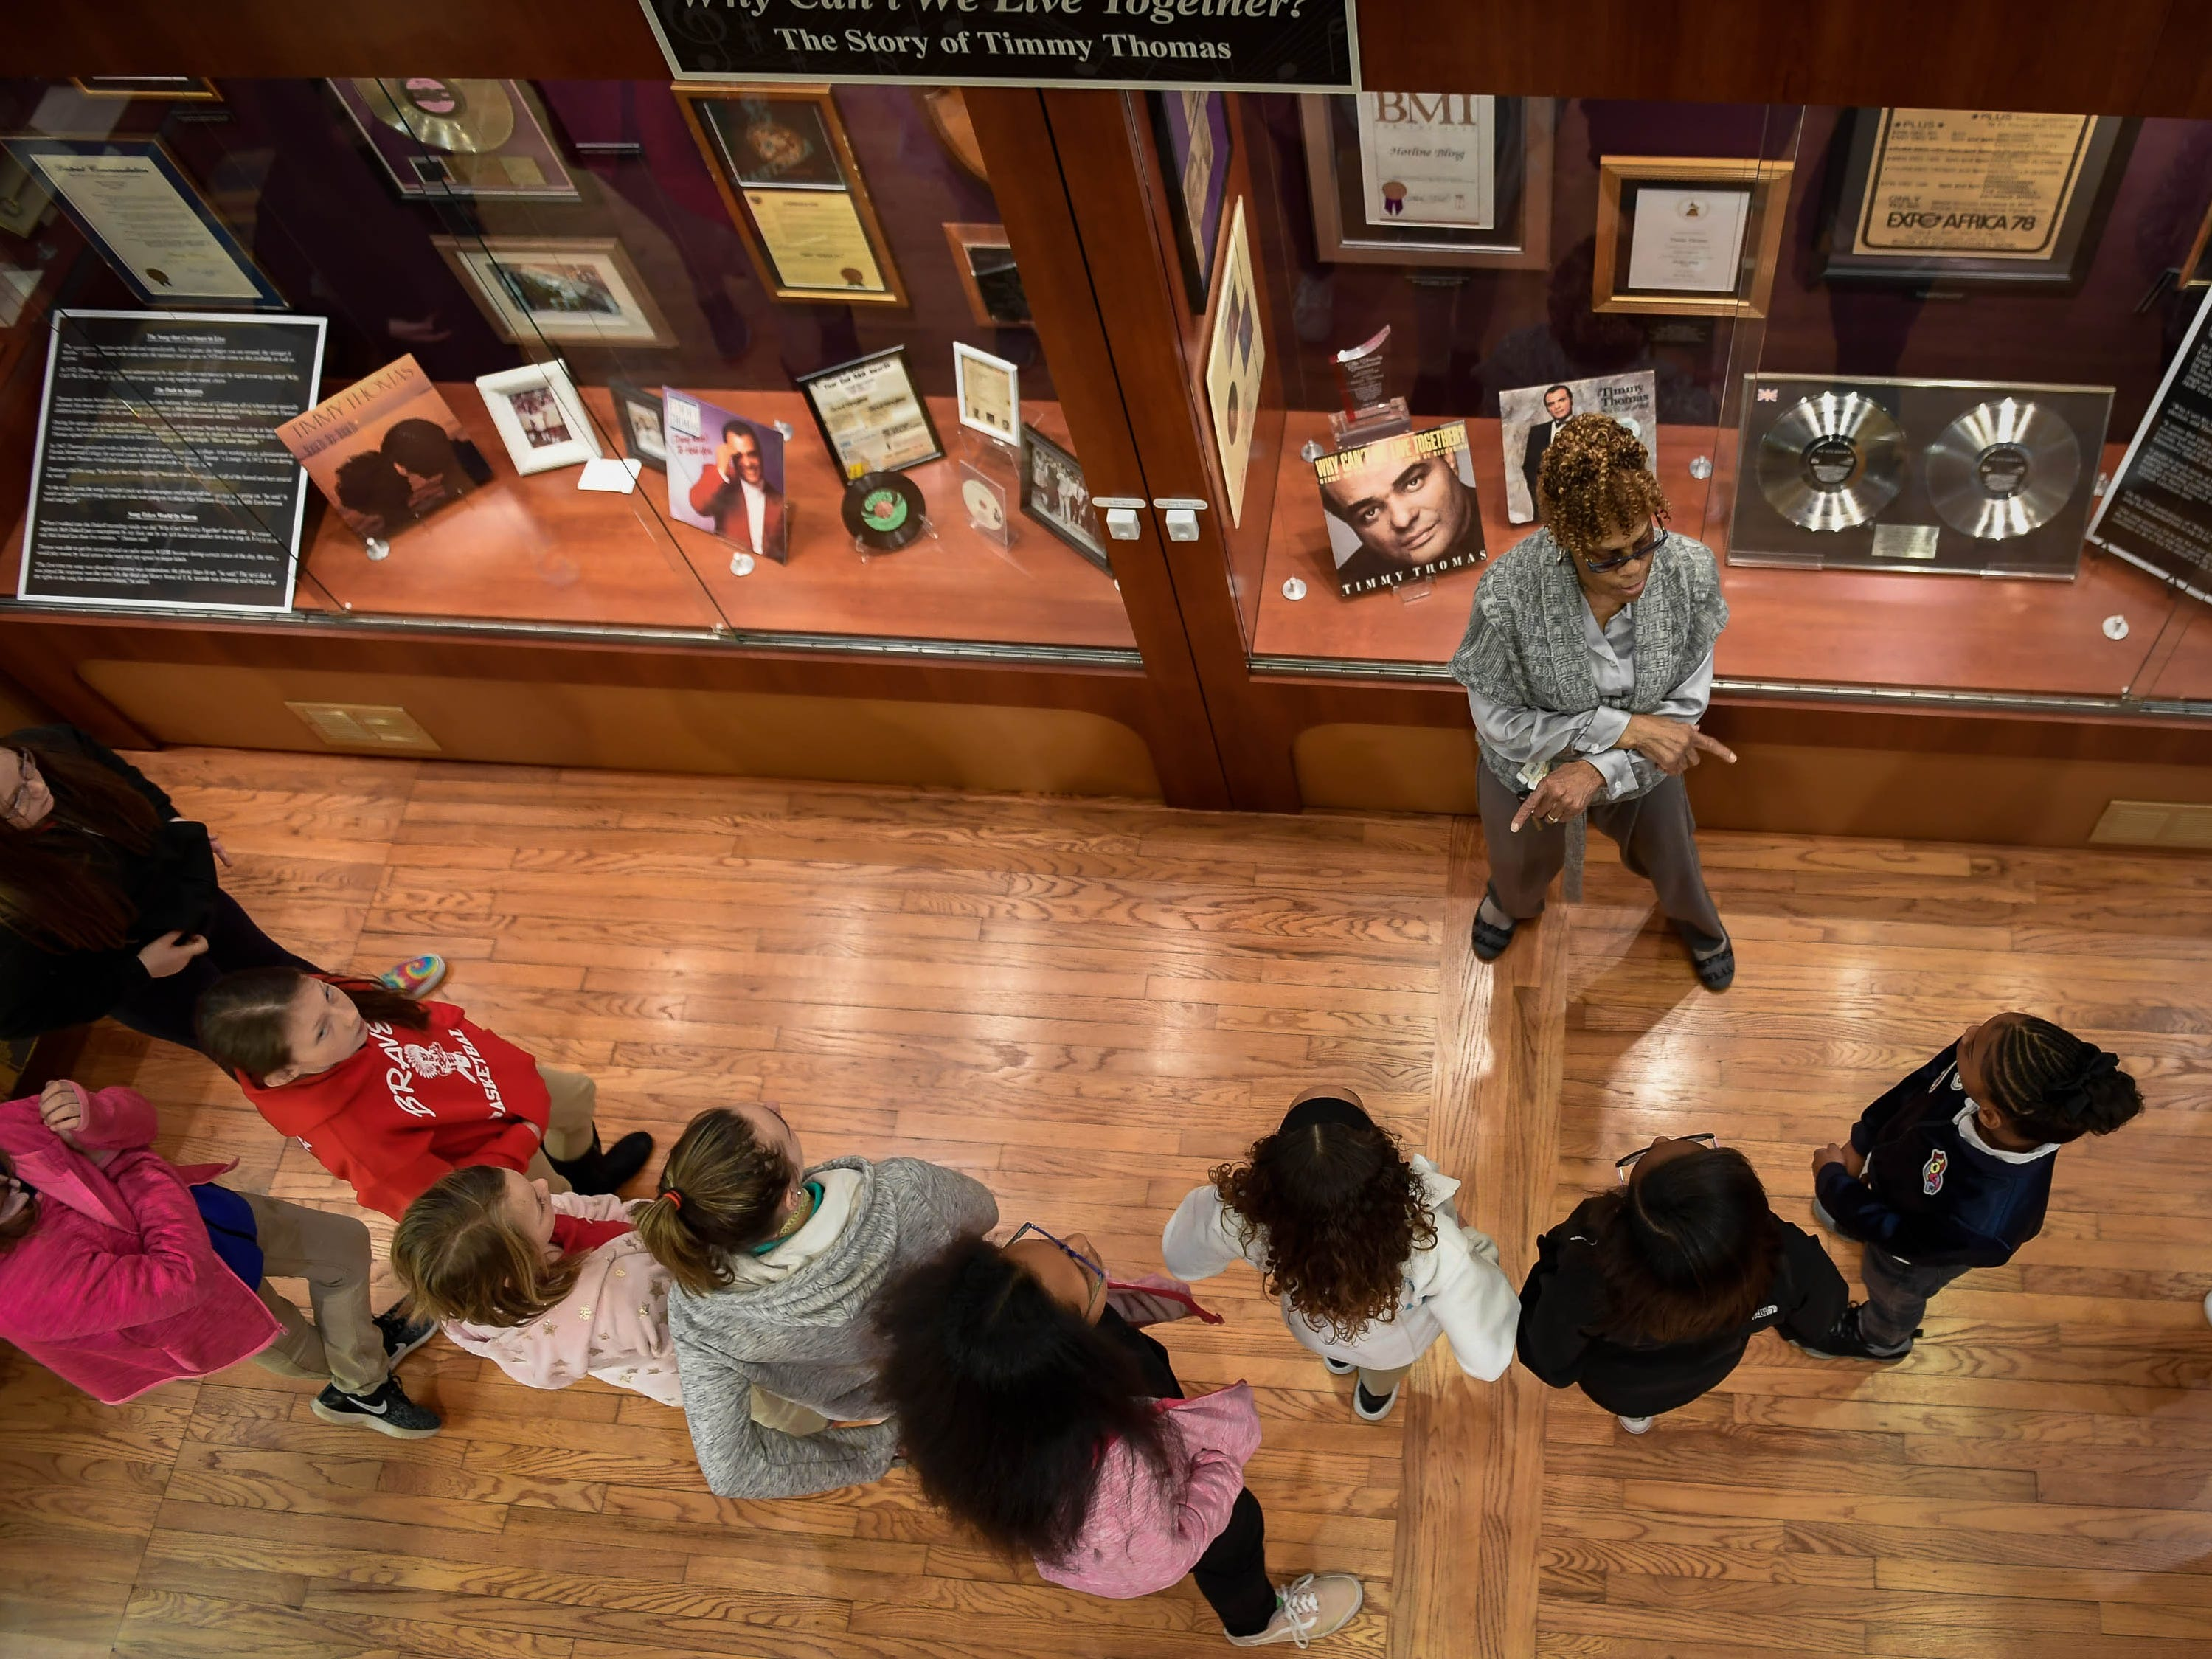 Standing in front of a display honoring local Rhythm and Blues singer Timmy Thomas, museum worker Janice Hale leads a group of Dexter Elementary fifth graders on a tour of the Evansville African American Museum on Lincoln Avenue Friday, February 15, 2019.